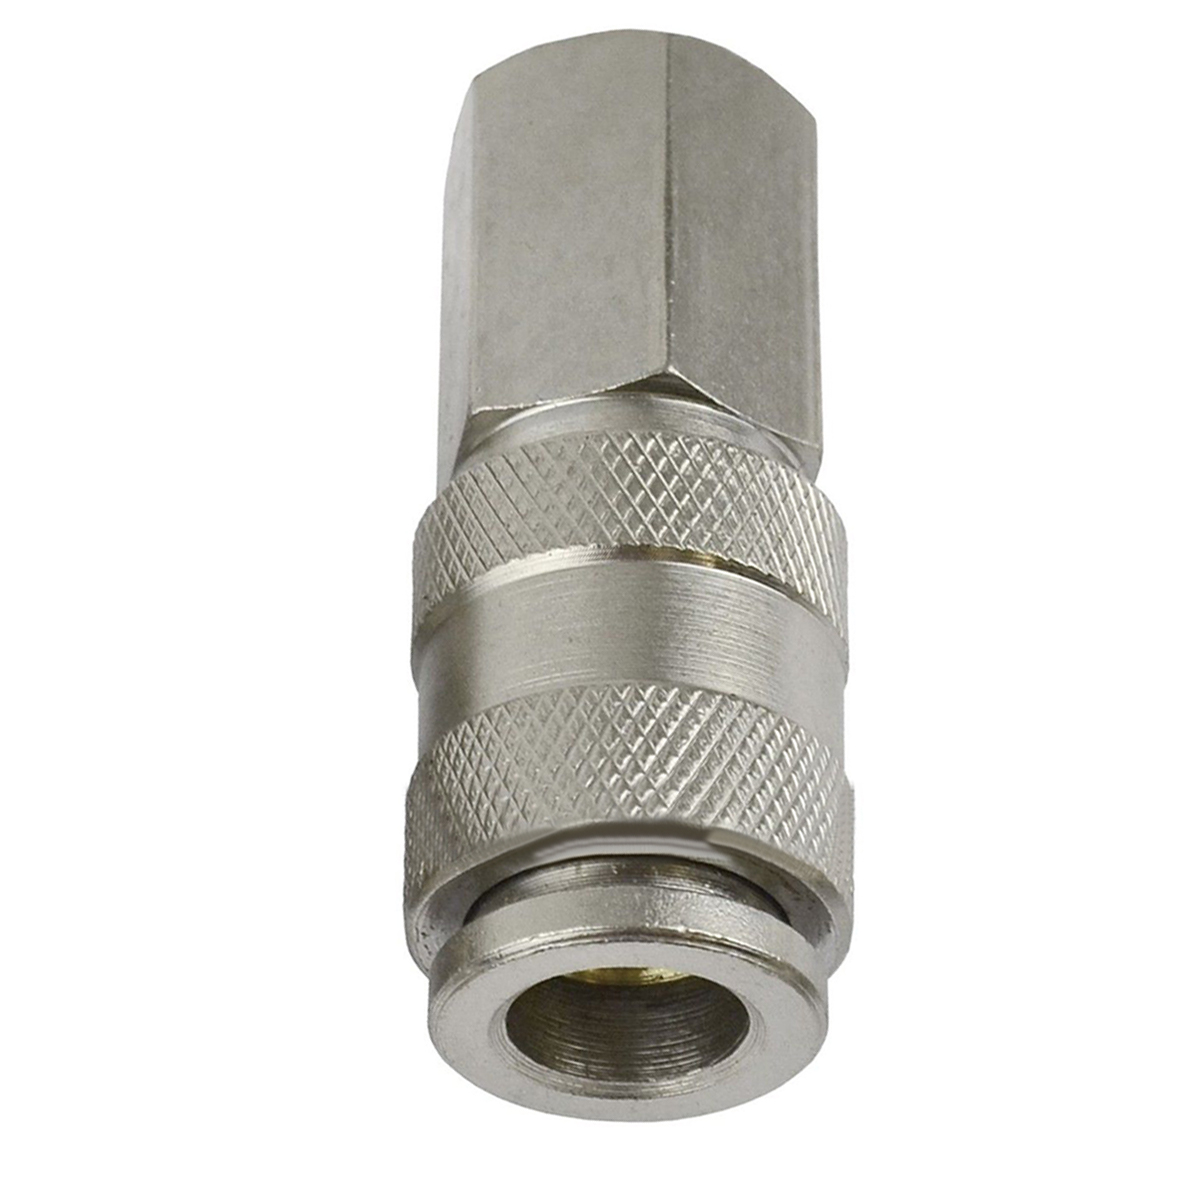 2pcs 1/4 BSP Air Line Hose Connector Mayitr Female/Male Euro Fitting Quick Release Set 5pcs 1 4 air line hose compressor connector mayitr male female quick release euro fittings